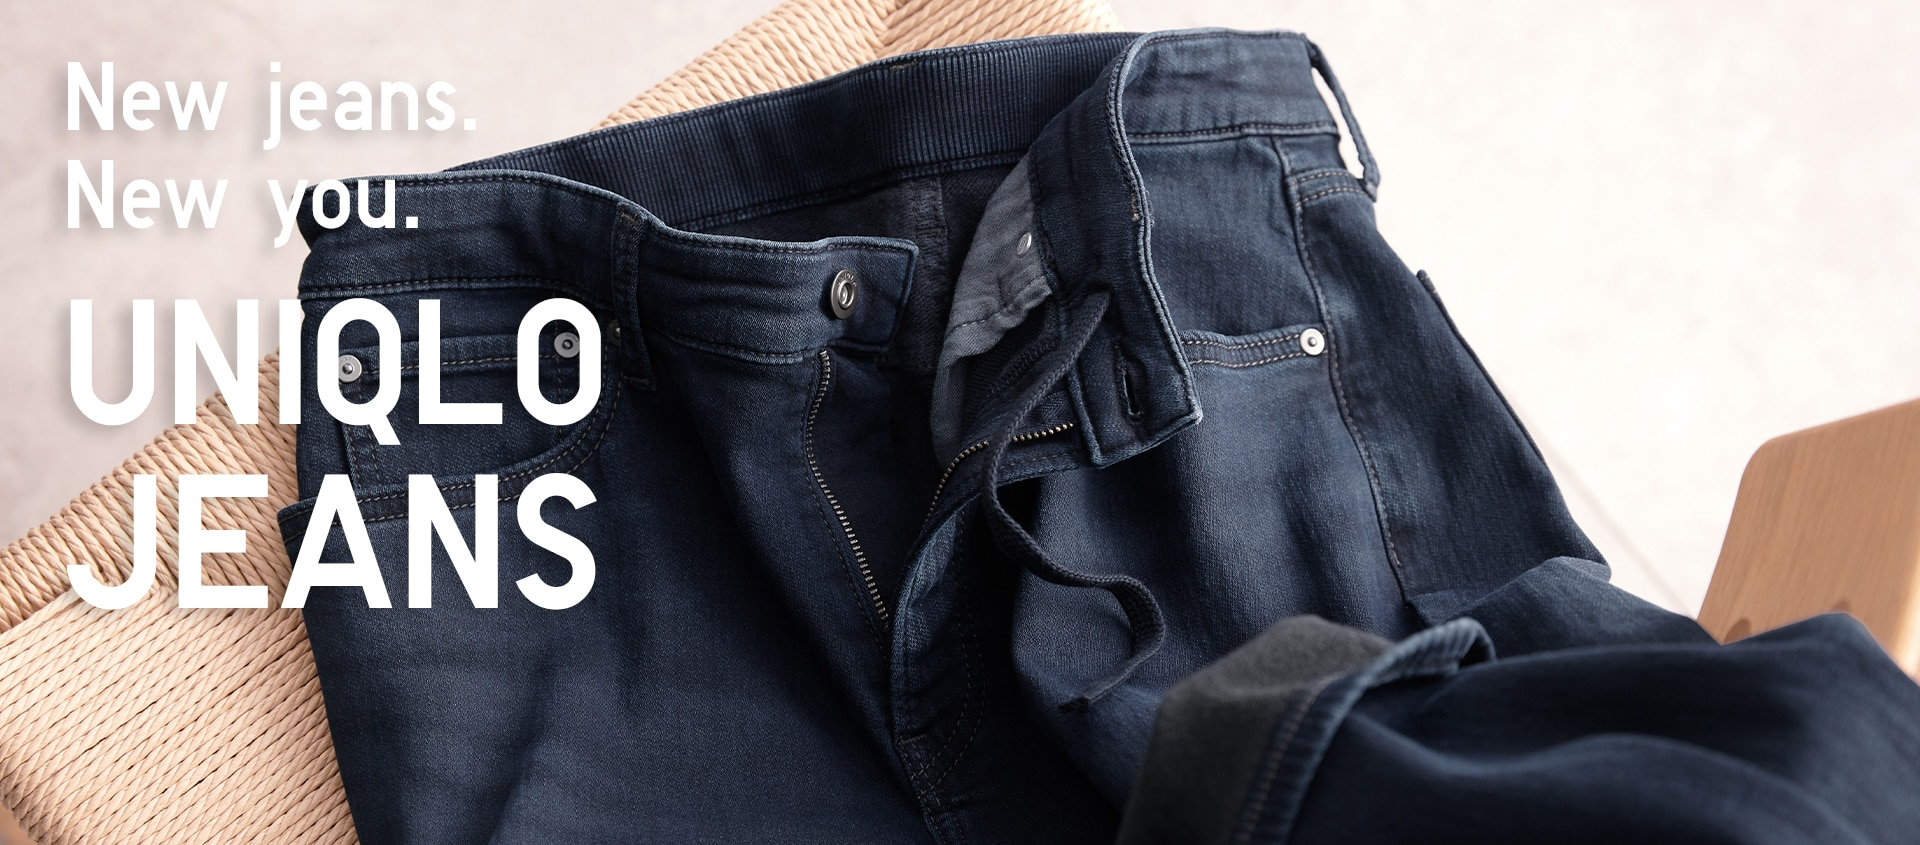 uniqlo jeans. new jeans. new you